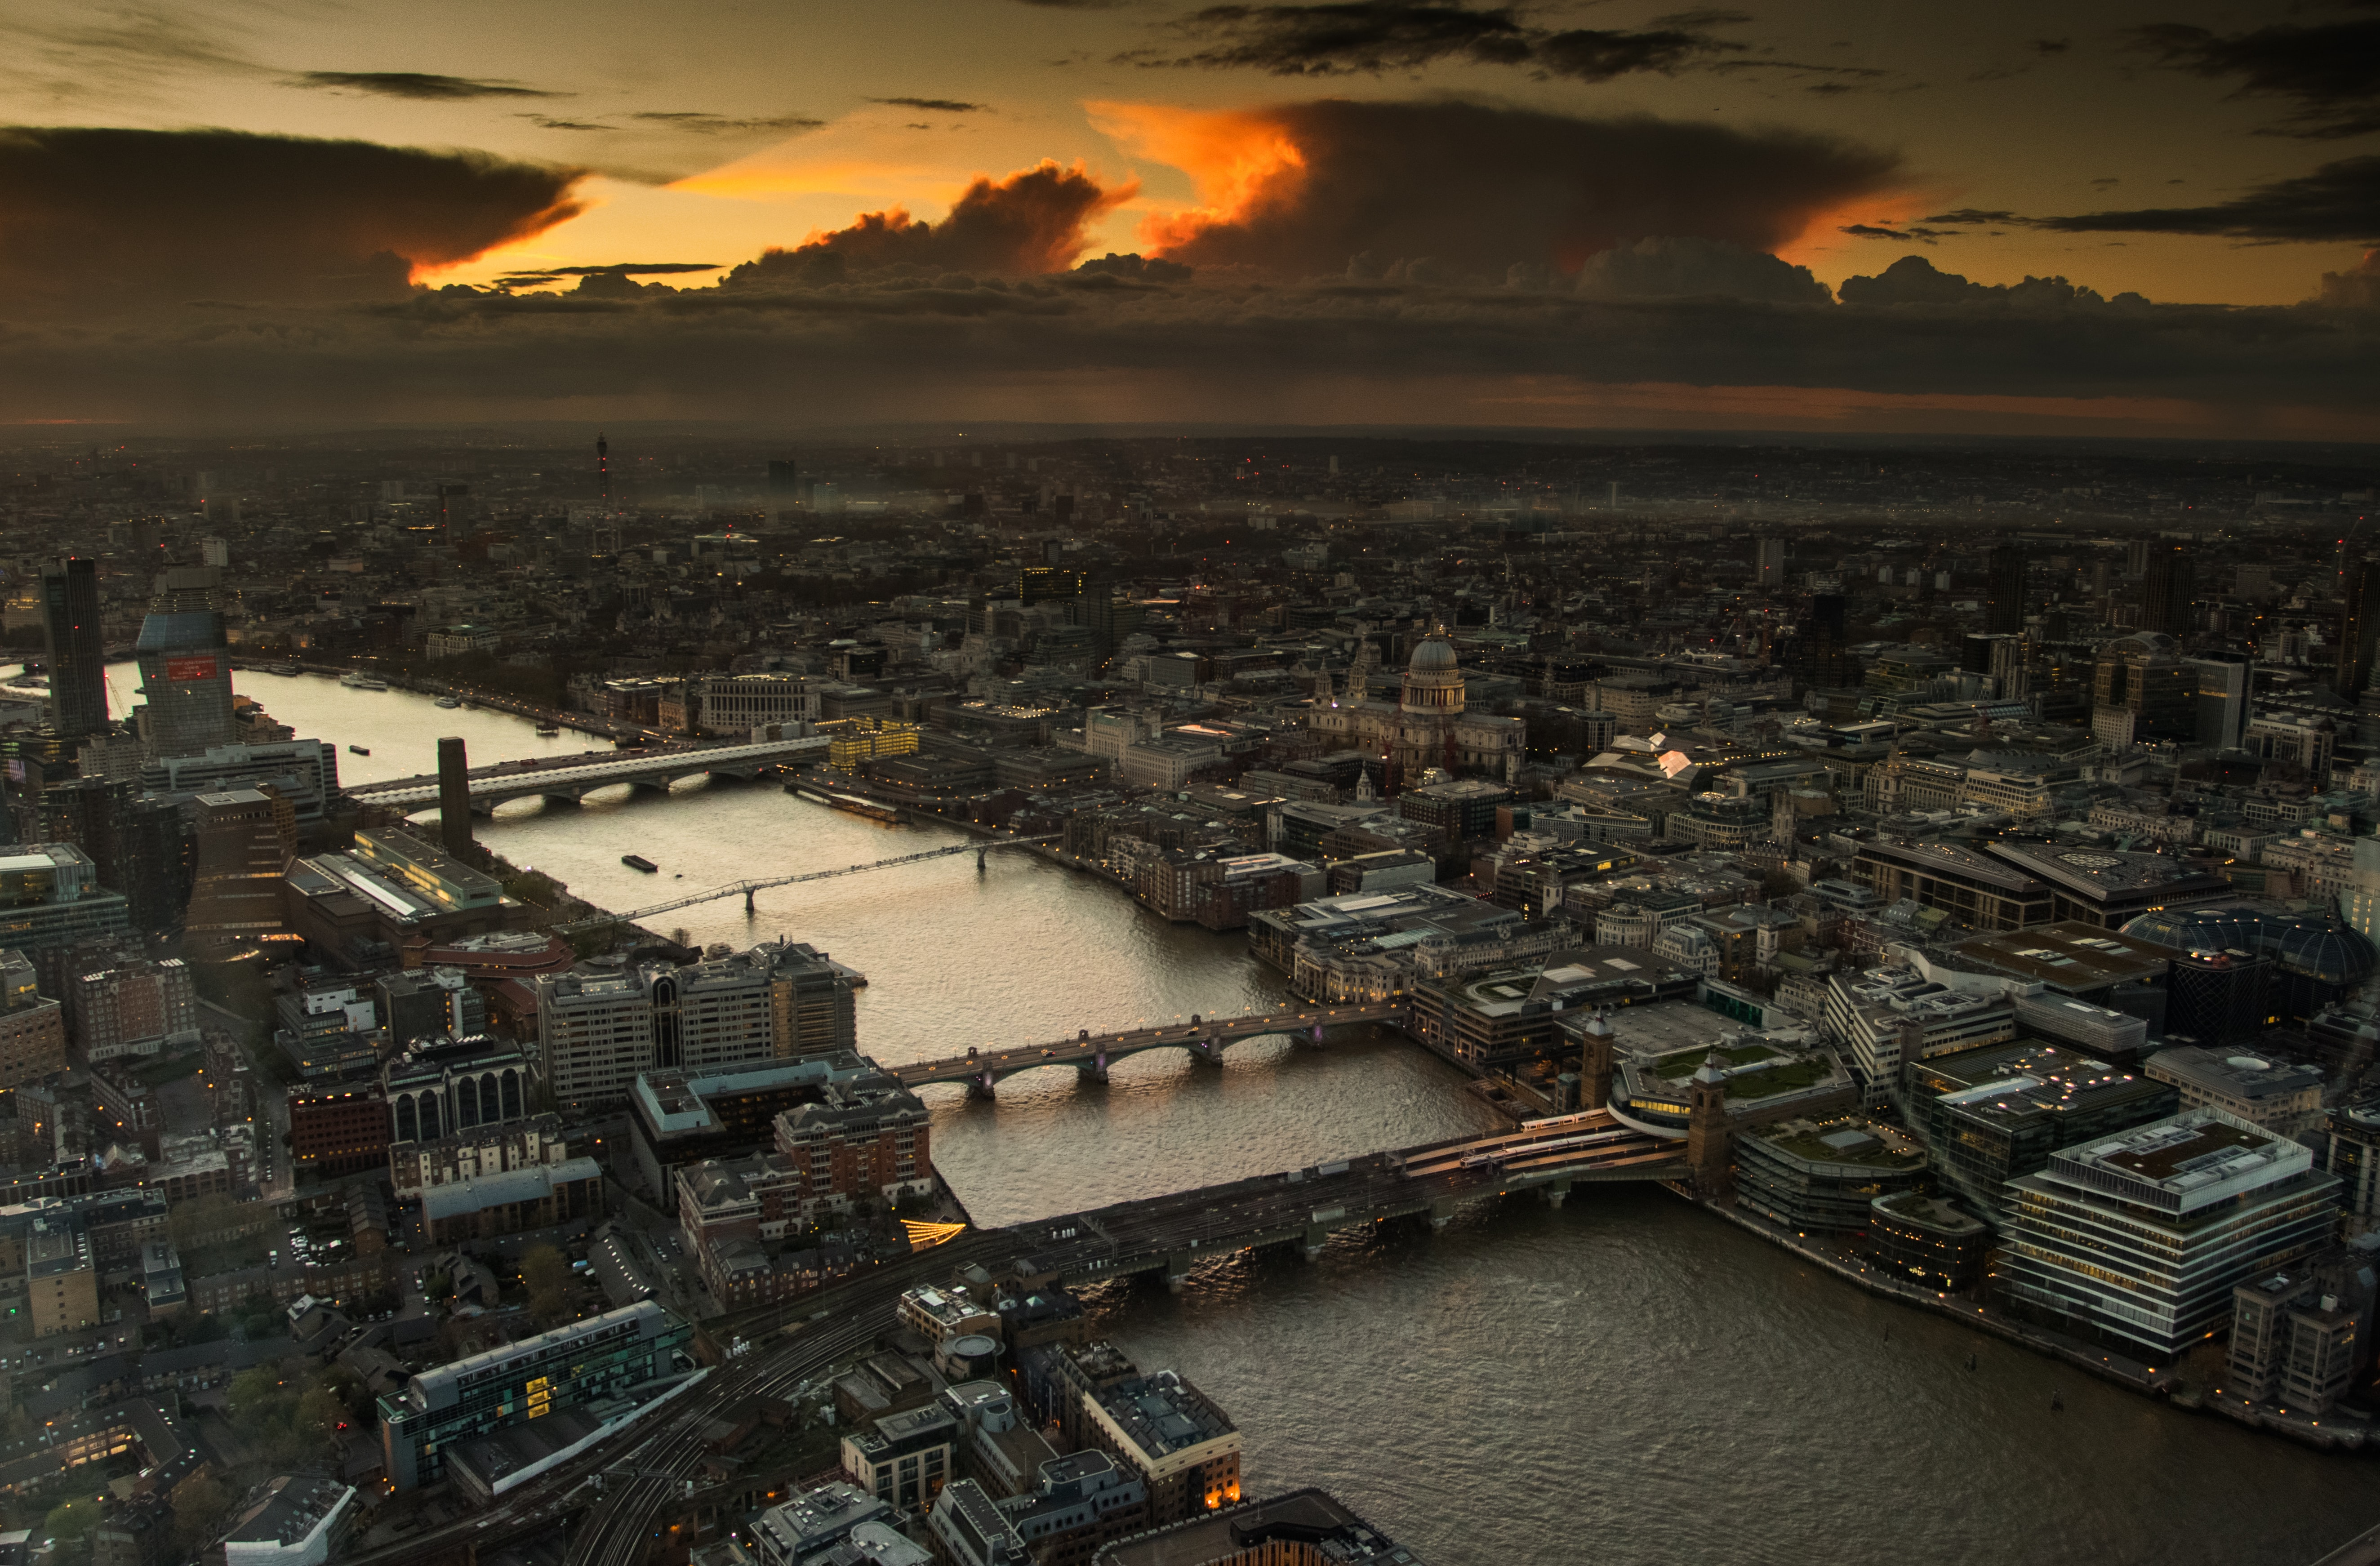 View from The Shard overlooking the River Thames and Central London including bridges, buildings and onward to the dark, cloudy sky